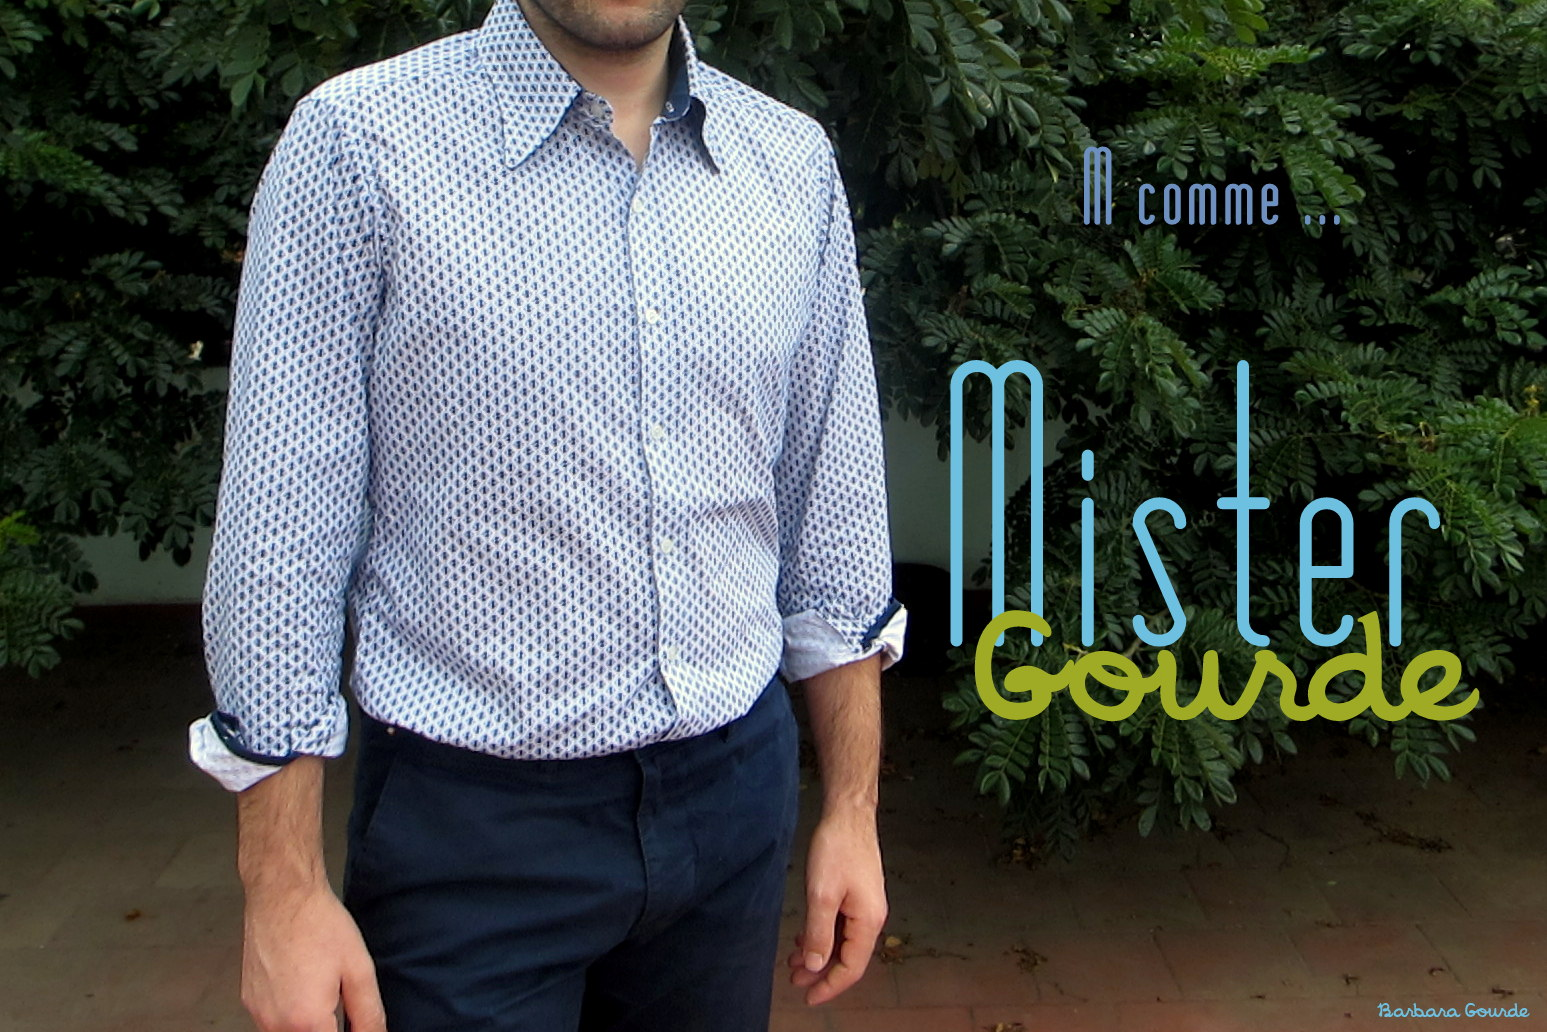 M comme Mister Gourde